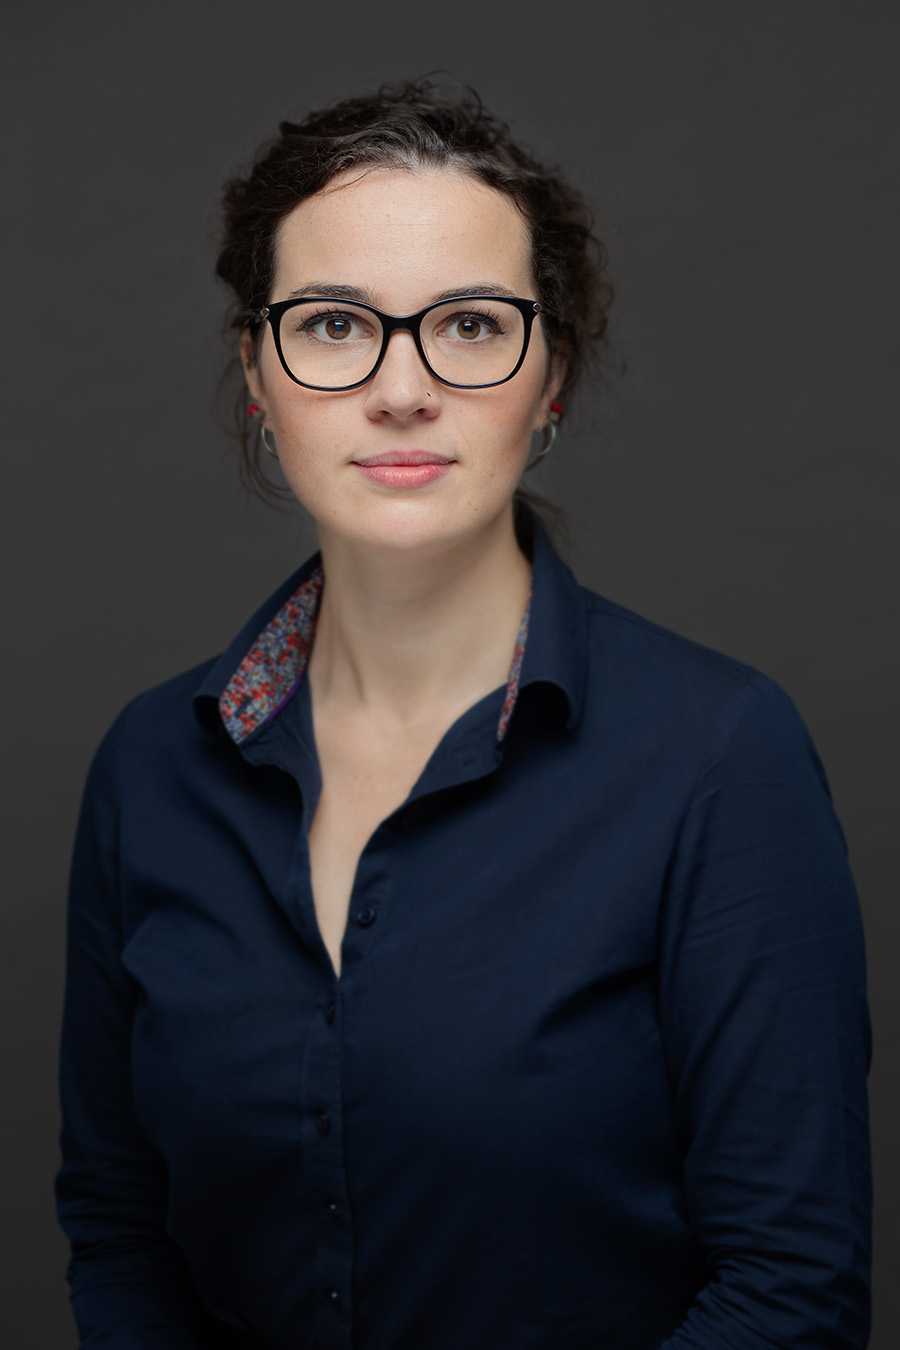 Low-key portrait of a young female architectural assistant wearing glasses, looking directly into camera, not smile.